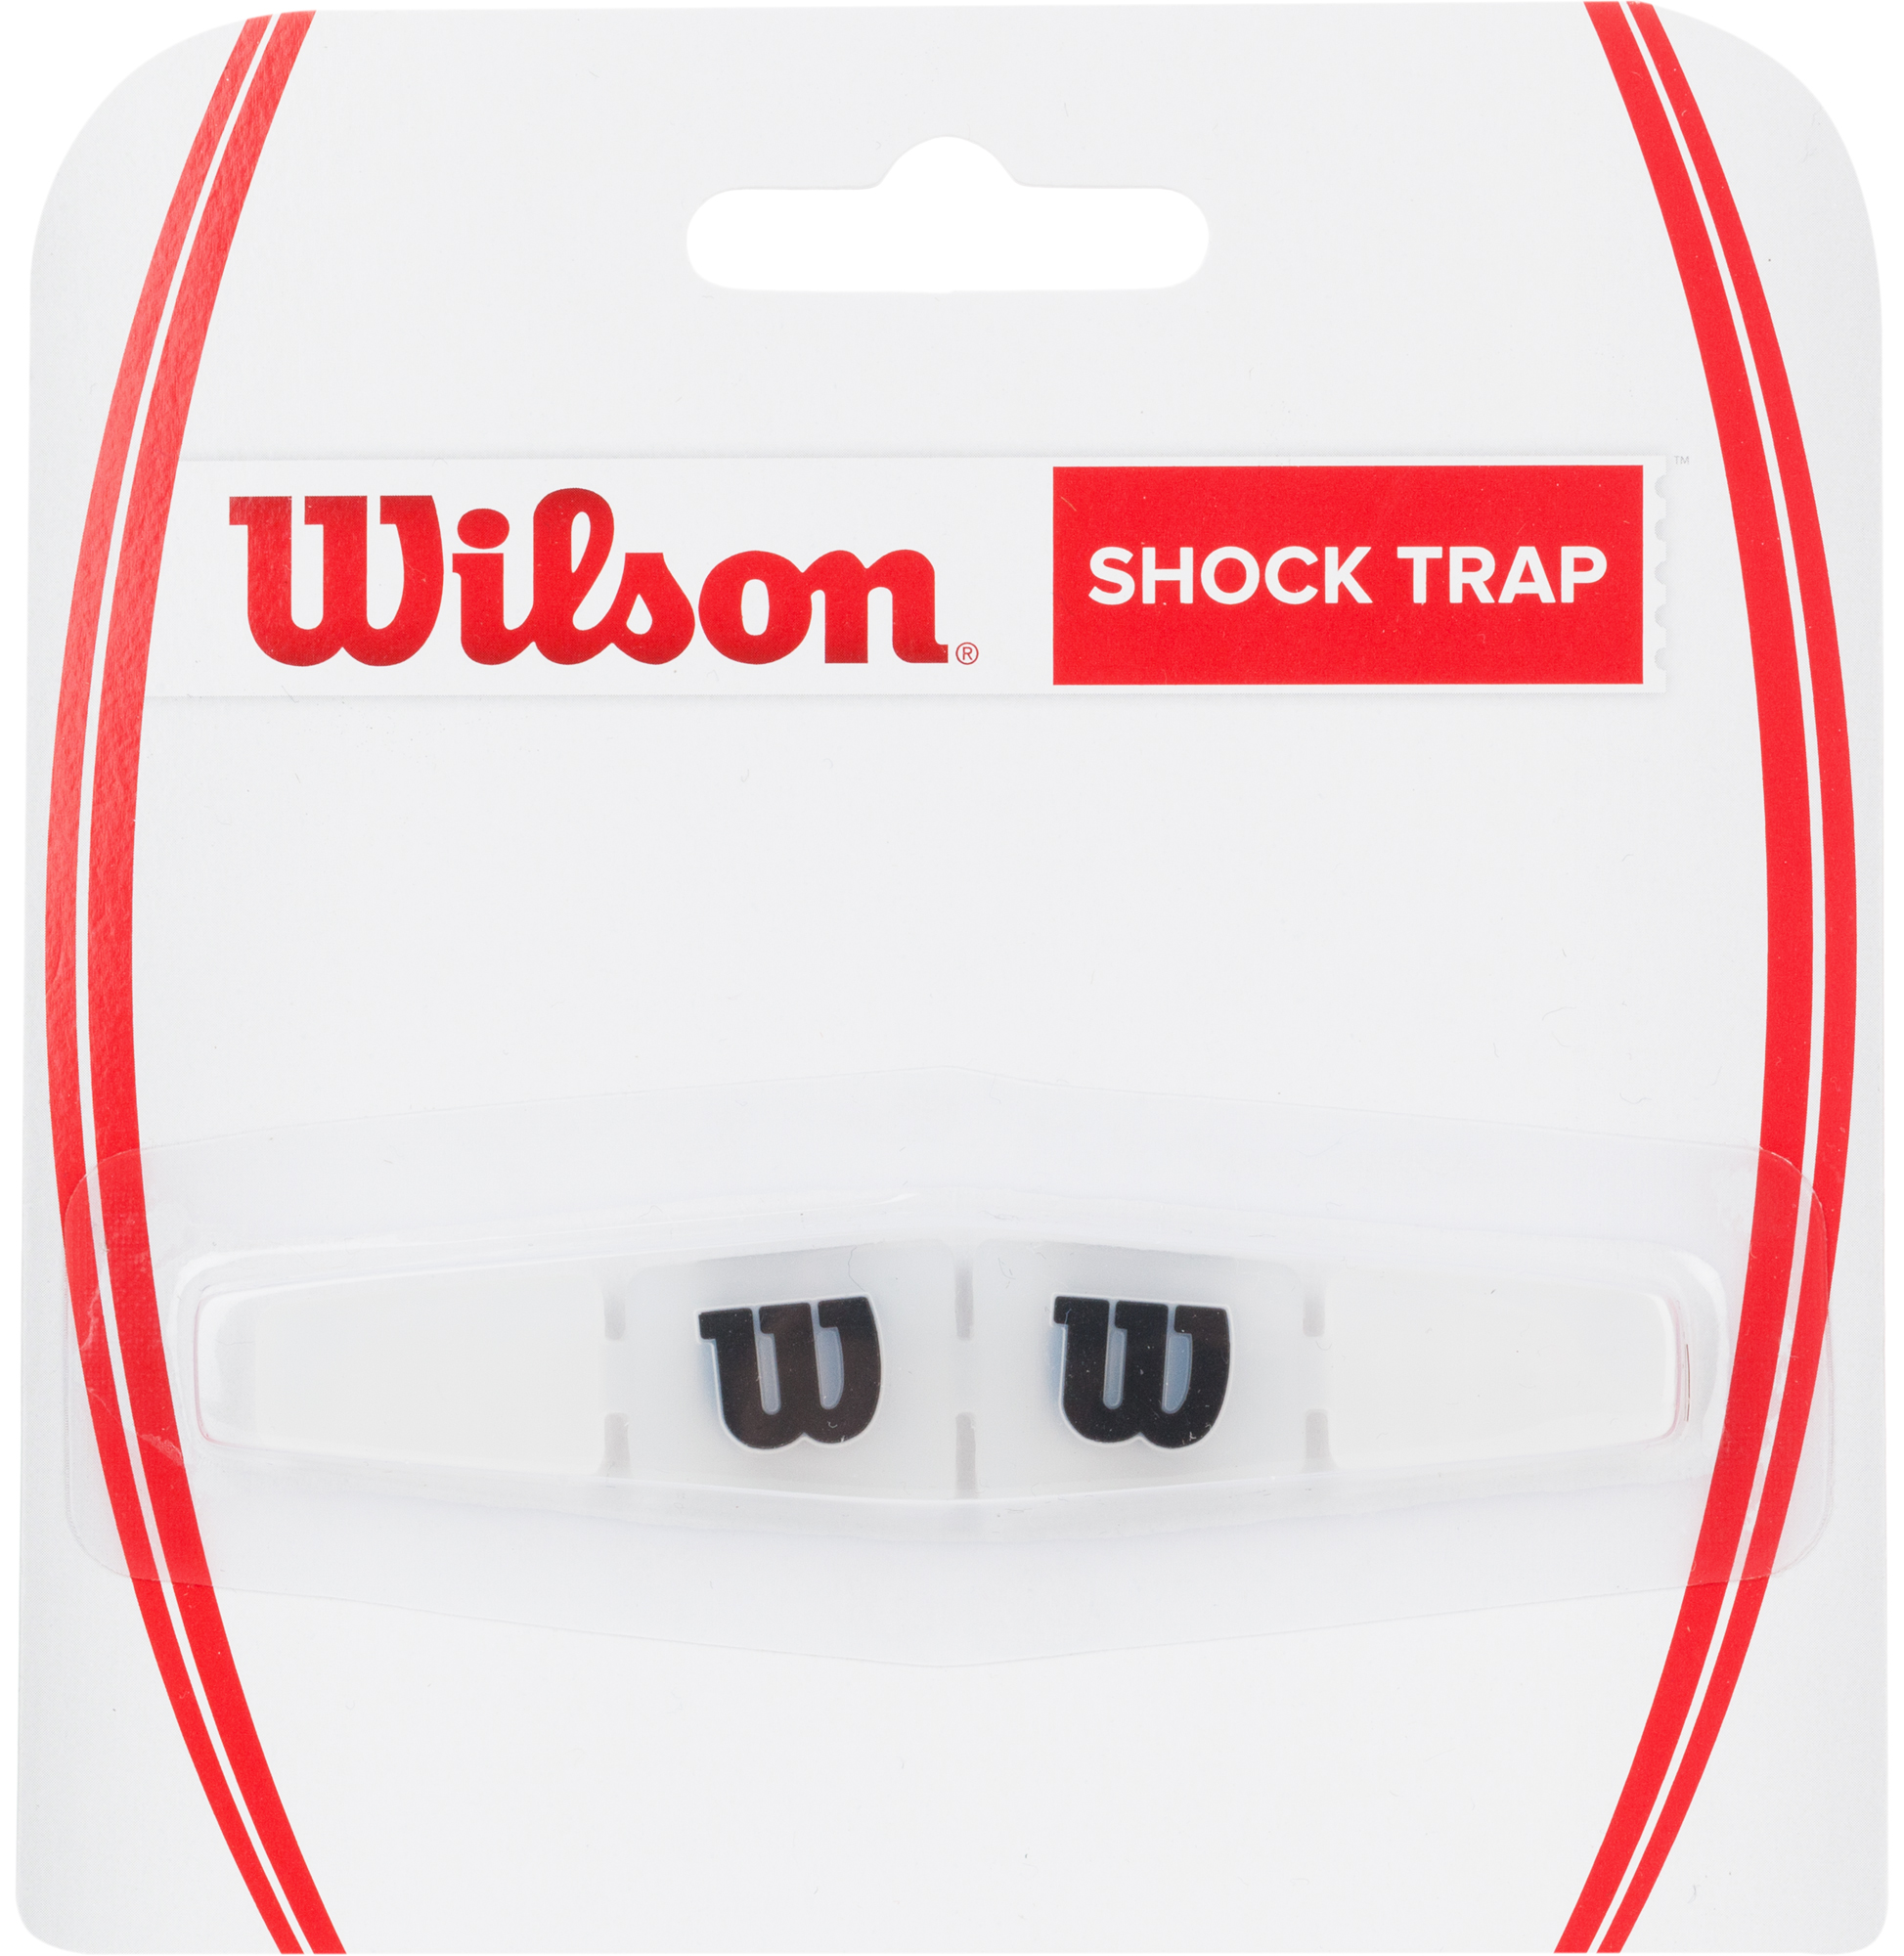 Wilson Виброгаситель Wilson Shock Trap виброгаситель wilson emotisorbs assorted pack смайлик